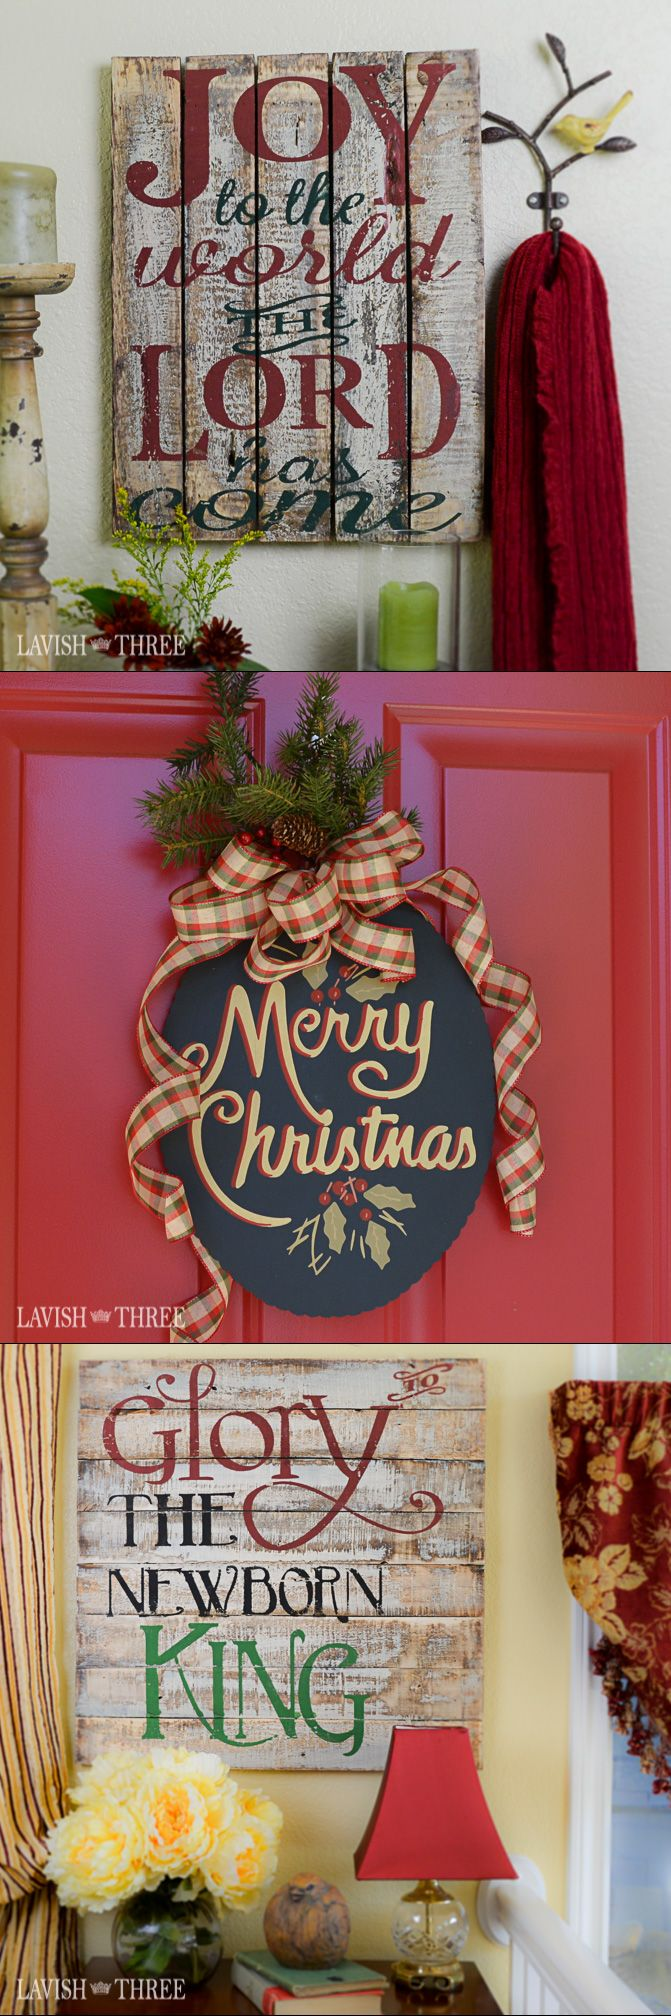 Welcome your guests this Christmas season with our vintage inspired signs. Choose from Joy to the world, Glory to the newborn king both on aged wood or Merry Christmas hand painted on tin. Explore our entire collection of home decor, gifts and jewelry to lavish your heart, your soul and your home!